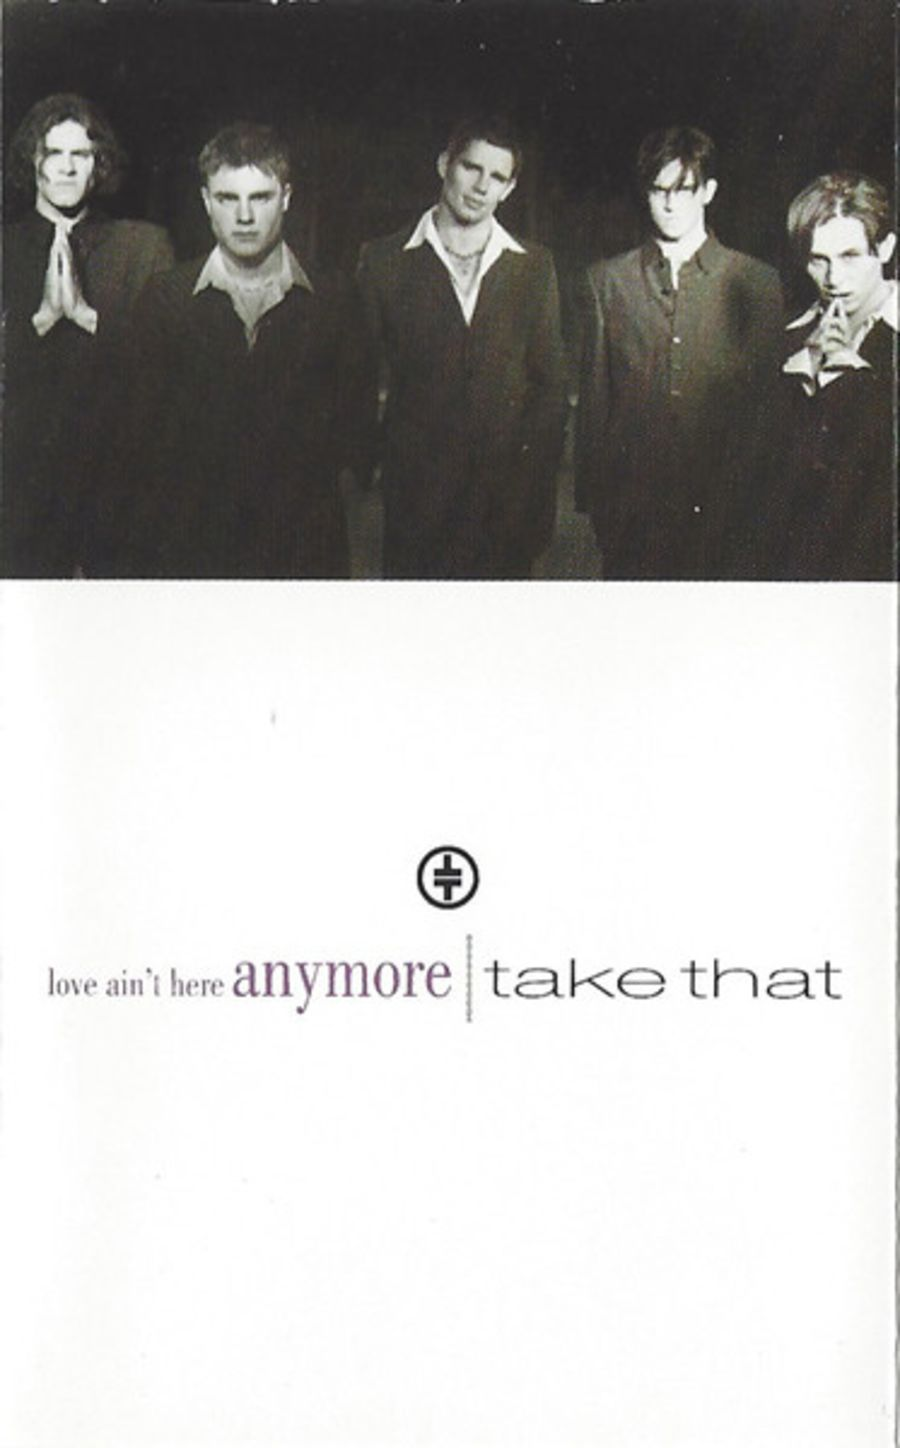 Take That - Love ain't here anymore cassette single